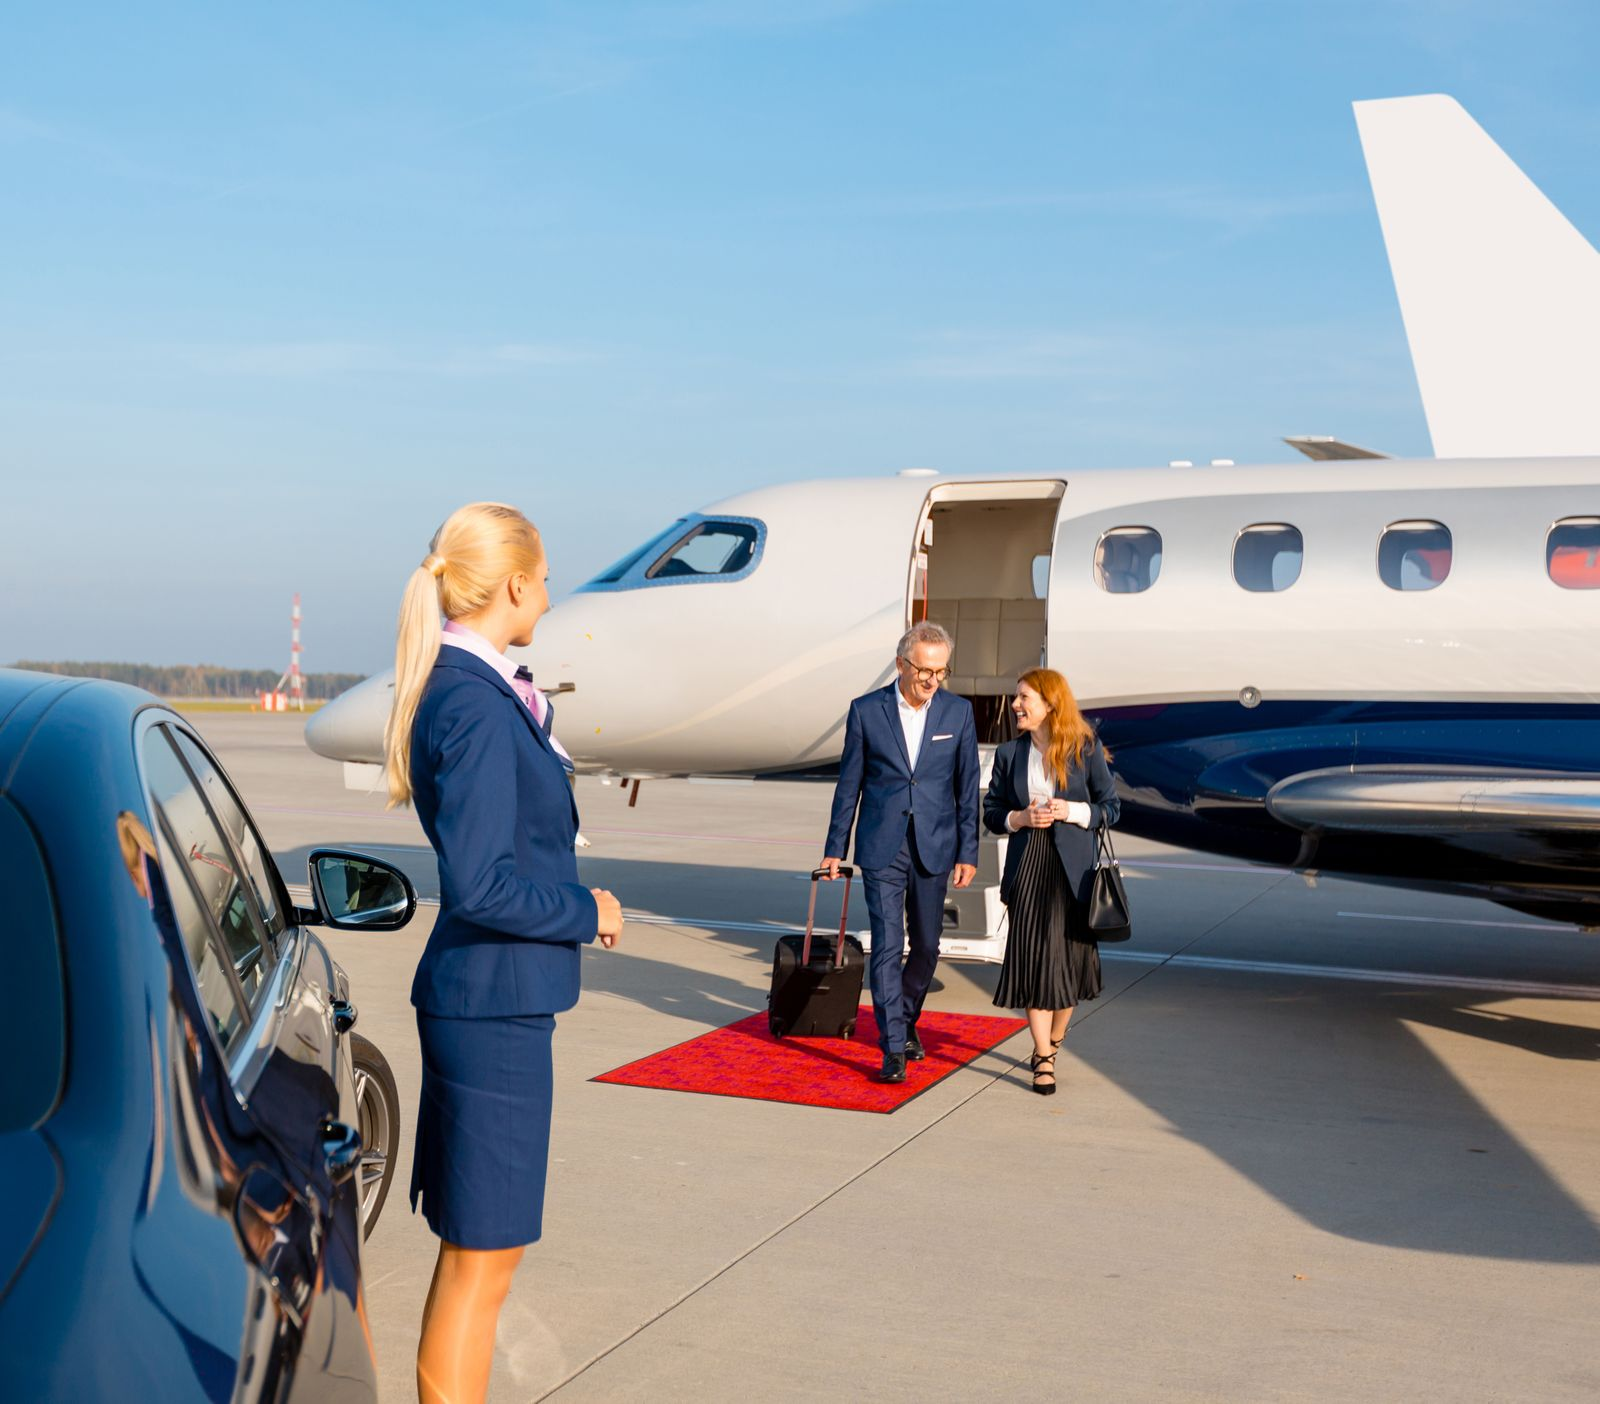 Mature professional couple in front of private jet at the airport